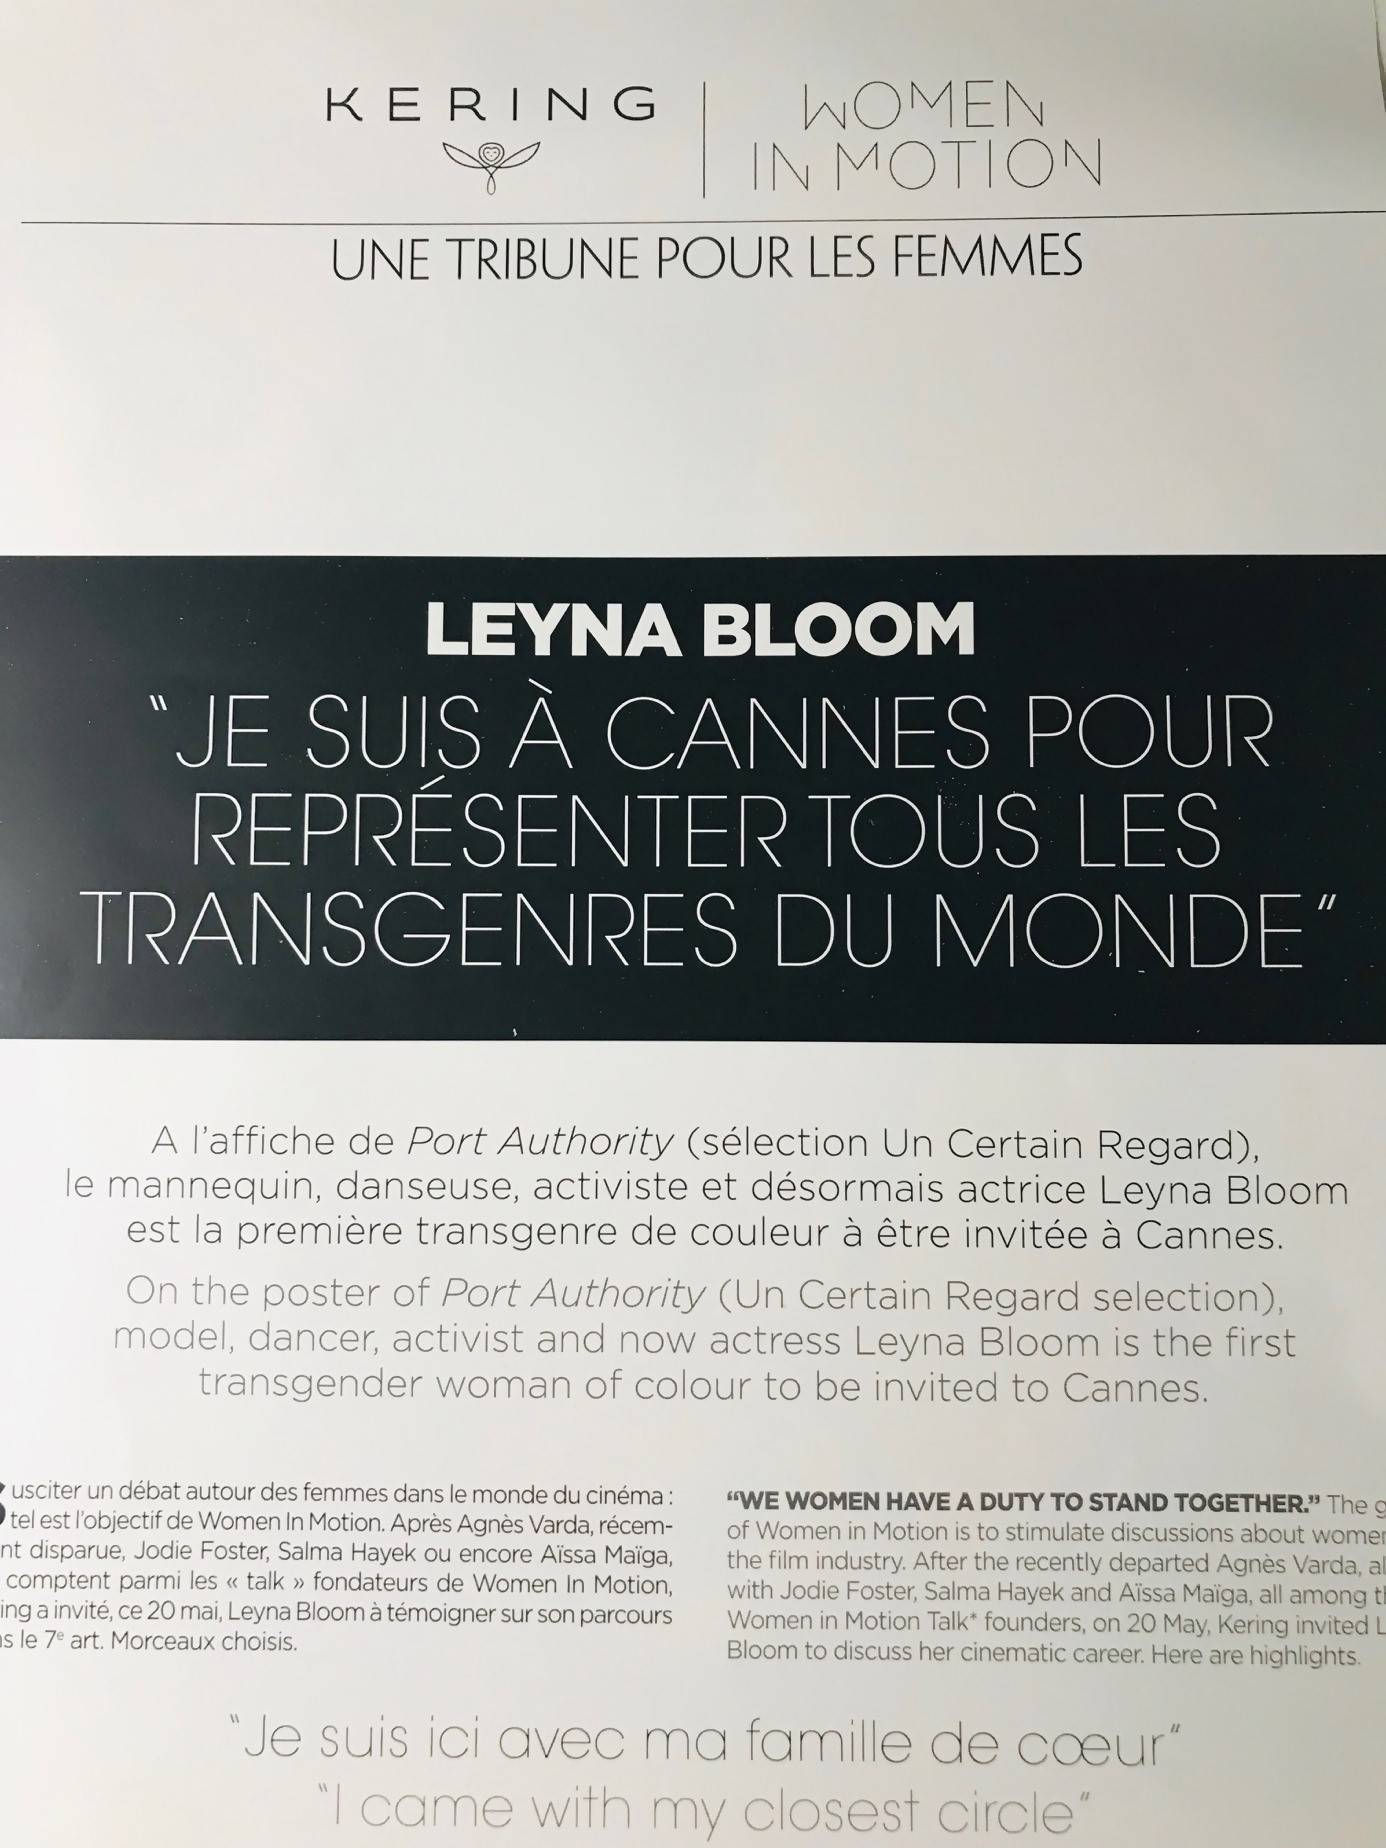 Article in Gala (famous French magazine) special about Kering Women in Motion Program